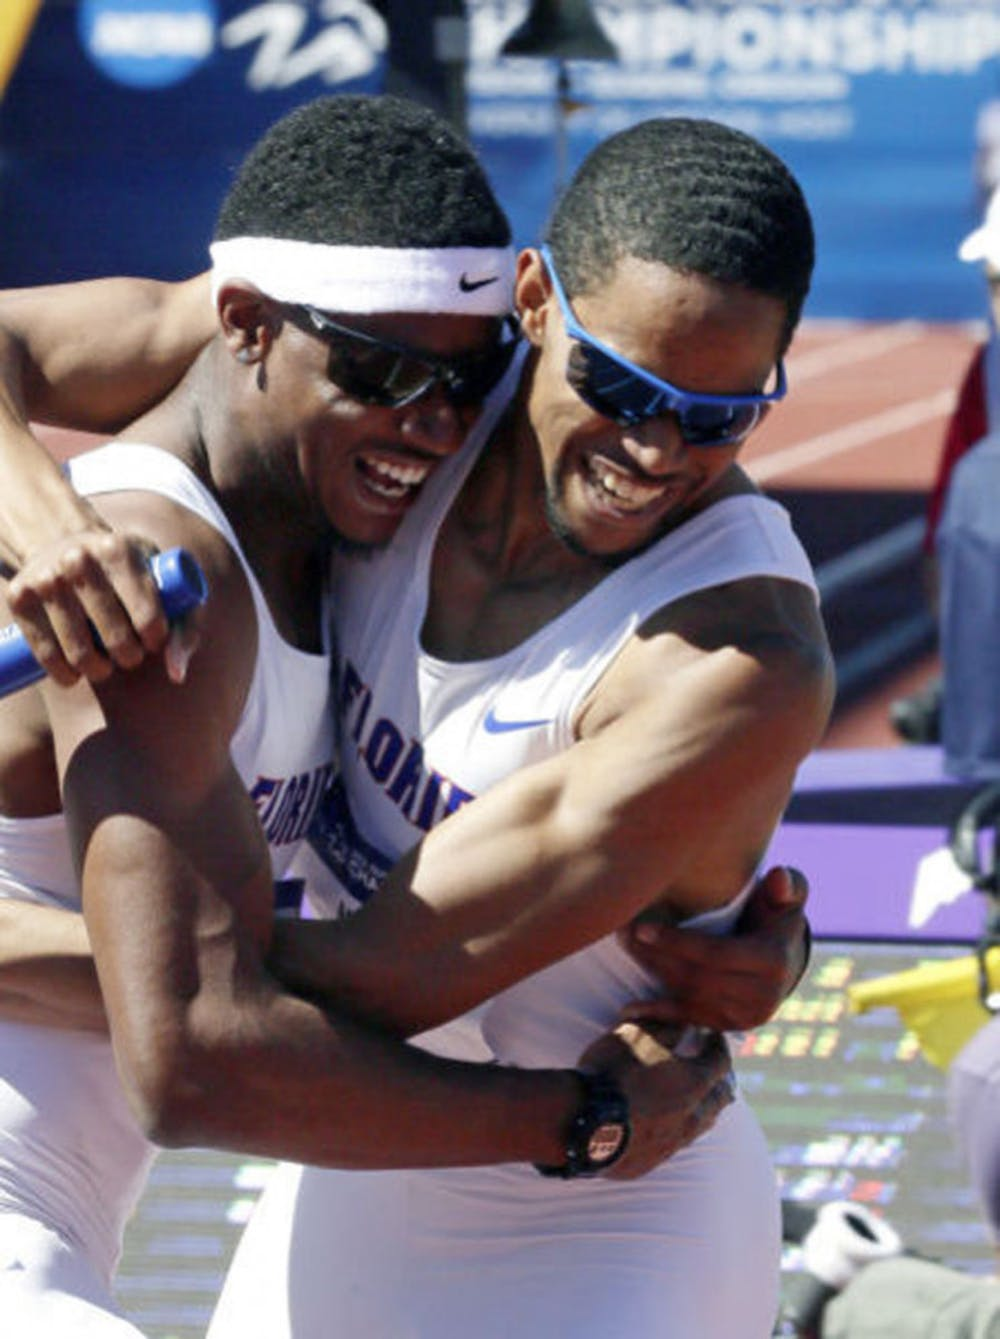 <p>Hugh Graham Jr. (left) hugs Arman Hall after winning the 4x400m relay during the NCAA Outdoor Championships in Eugene, Ore., on Jun. 8, 2013.</p>